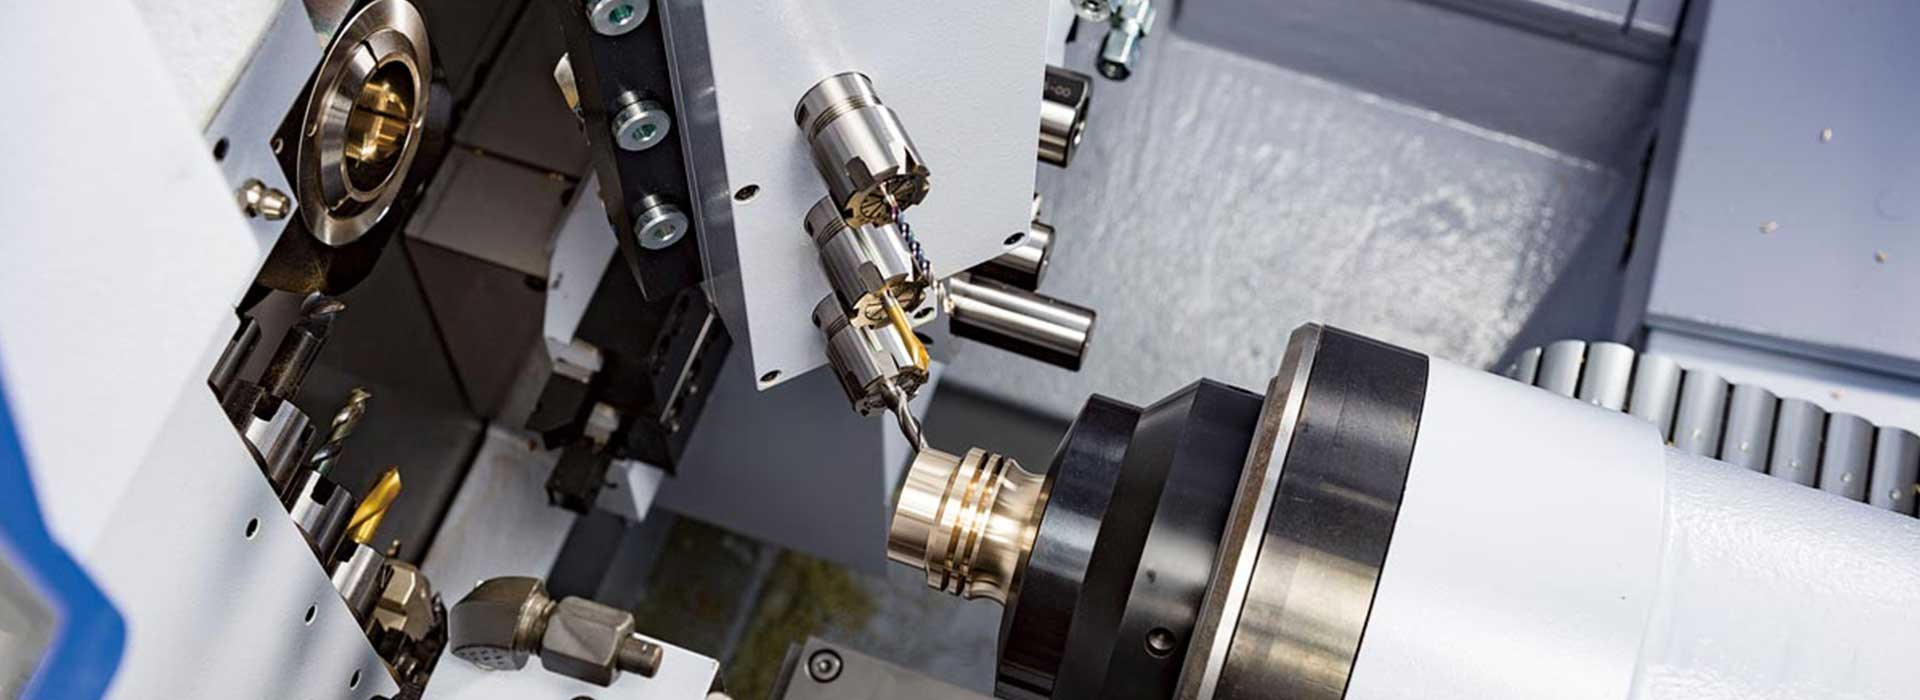 We have installed the new Star SR-38 lathe